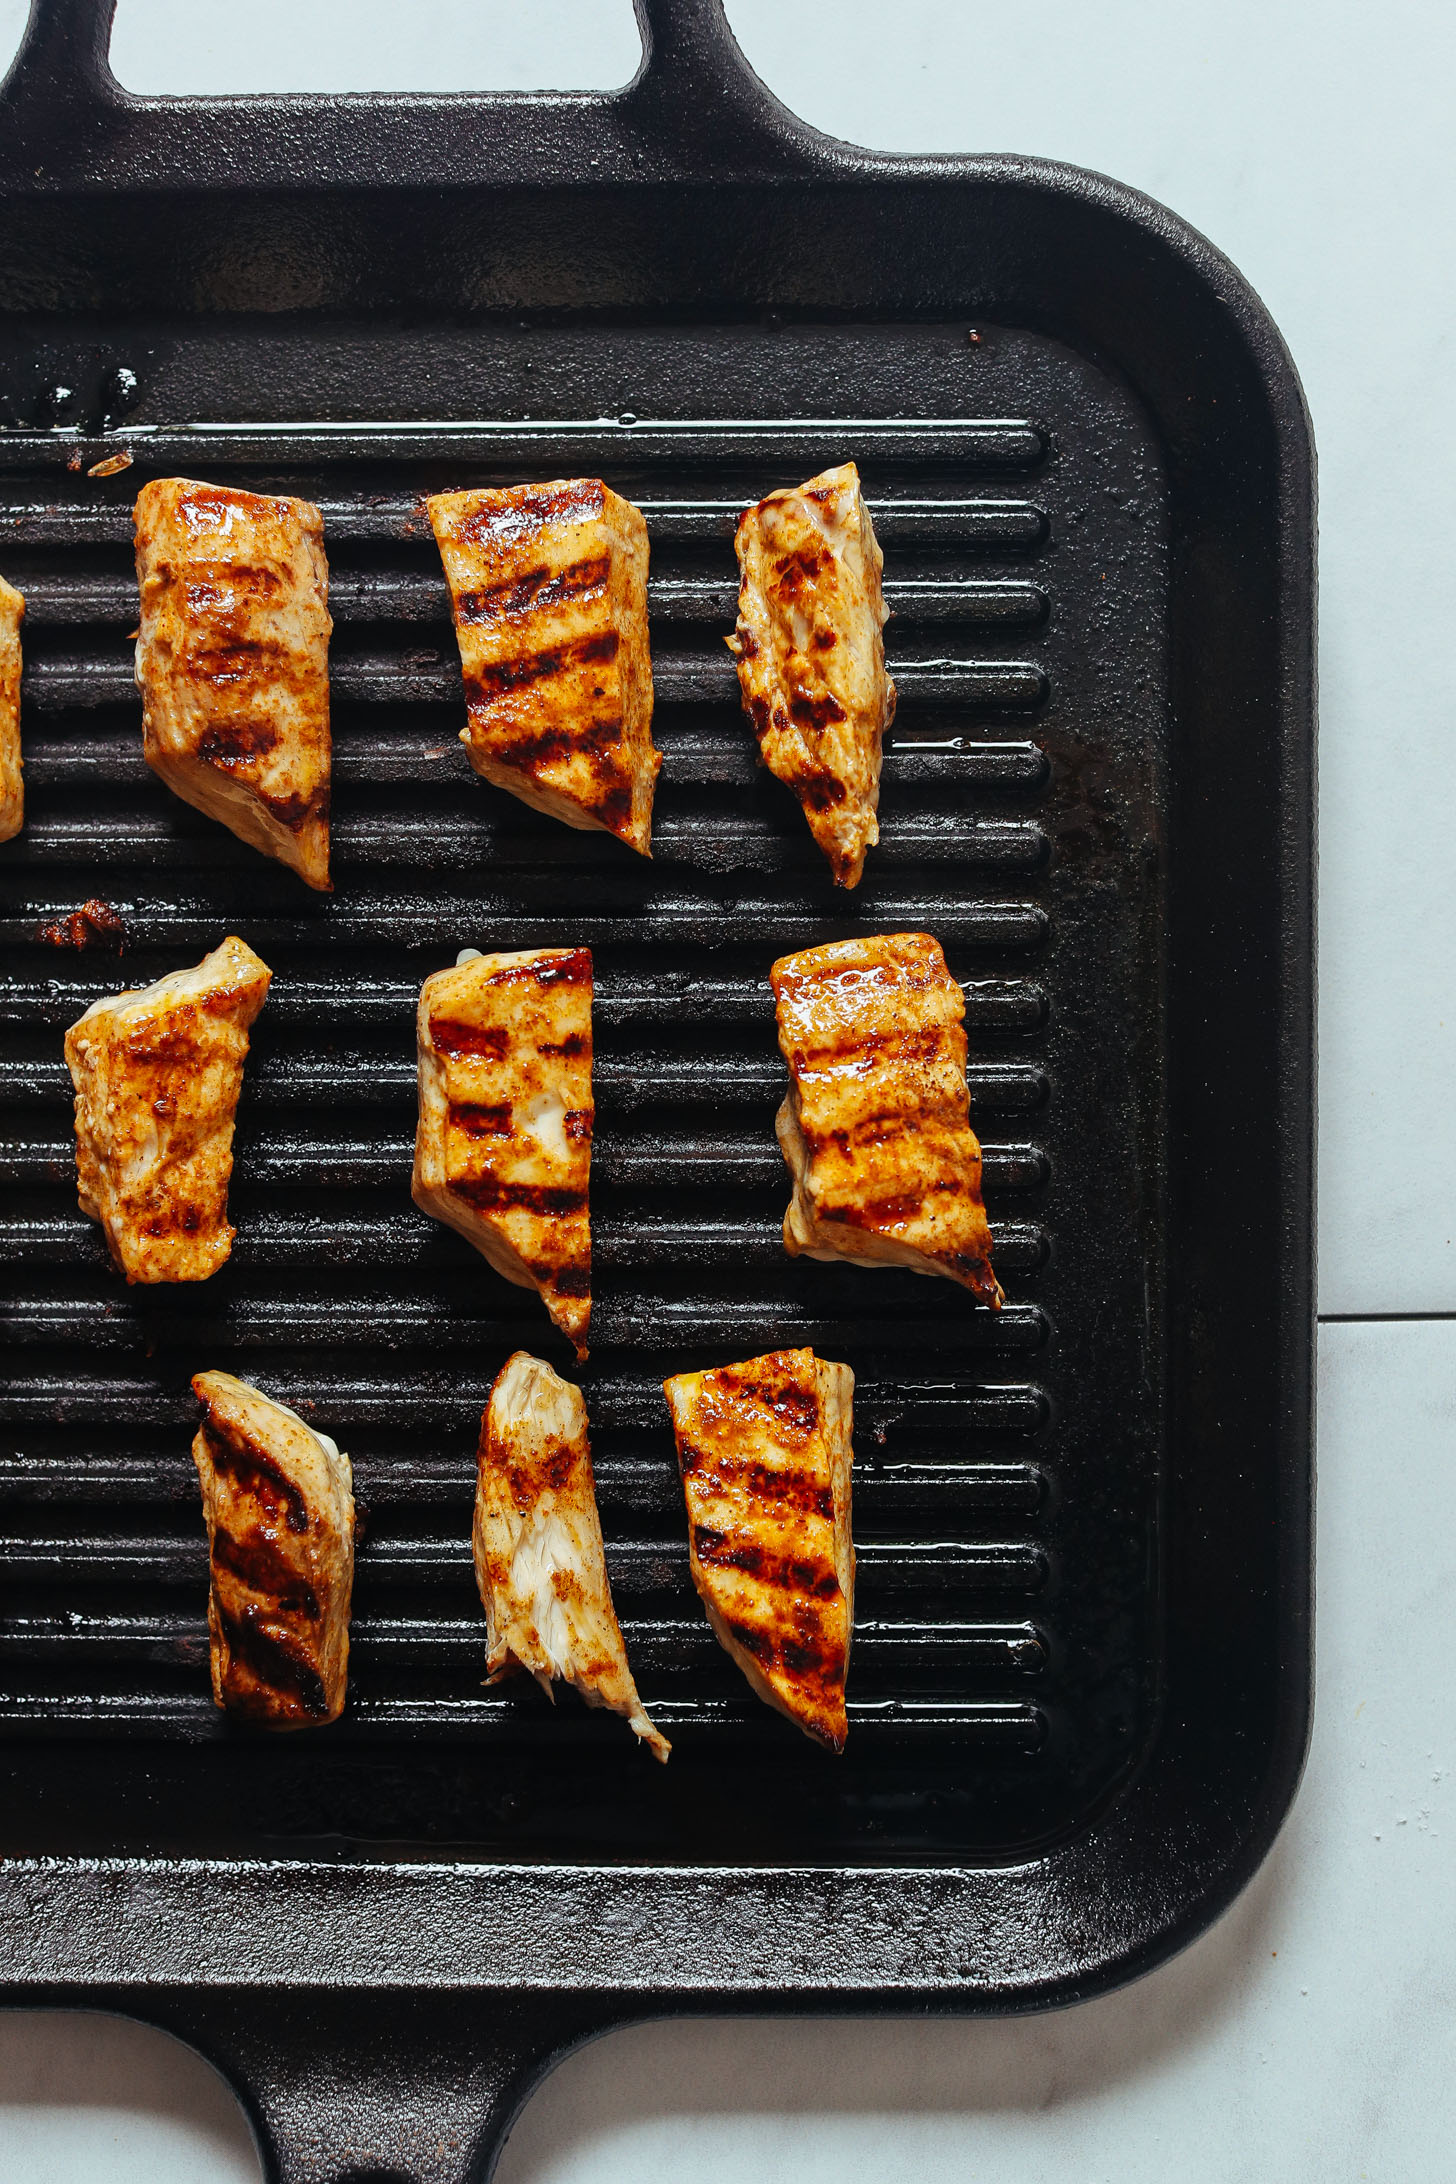 Grill pan with perfectly cooked fish for homemade fish tacos